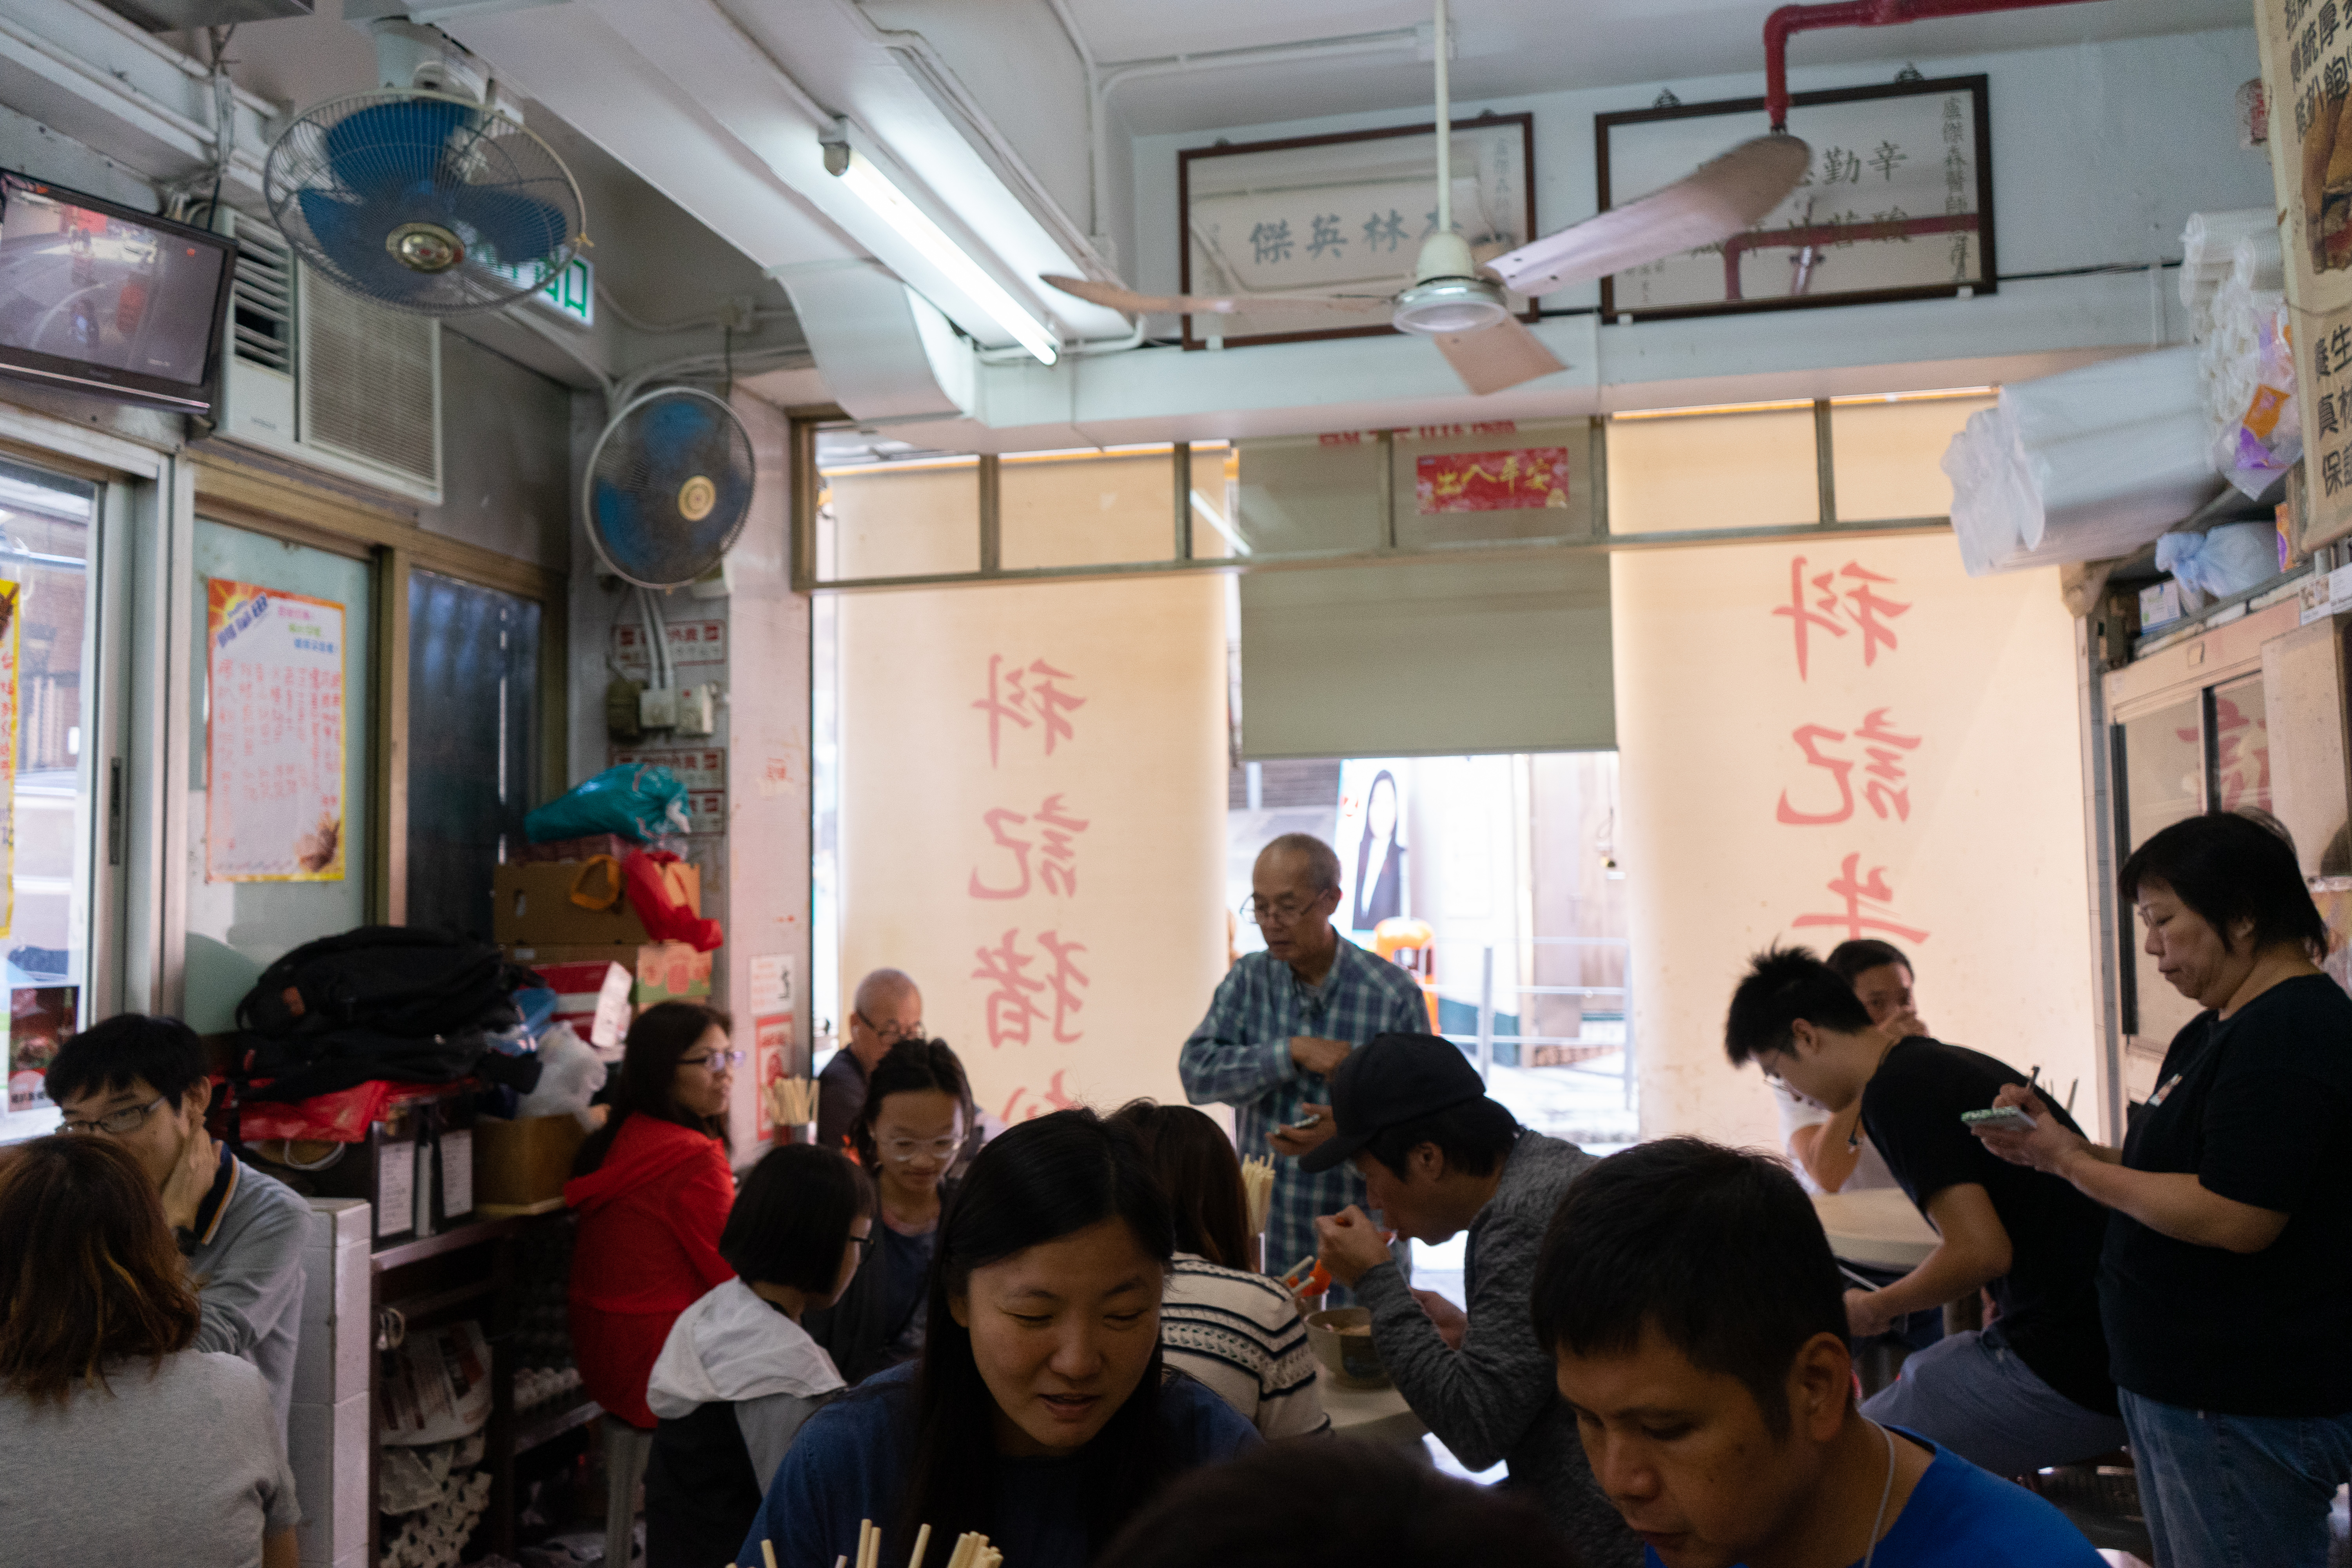 the interior of For Kee Restaurant in Sheung Wan as one of the best local foods in Sheung Wan